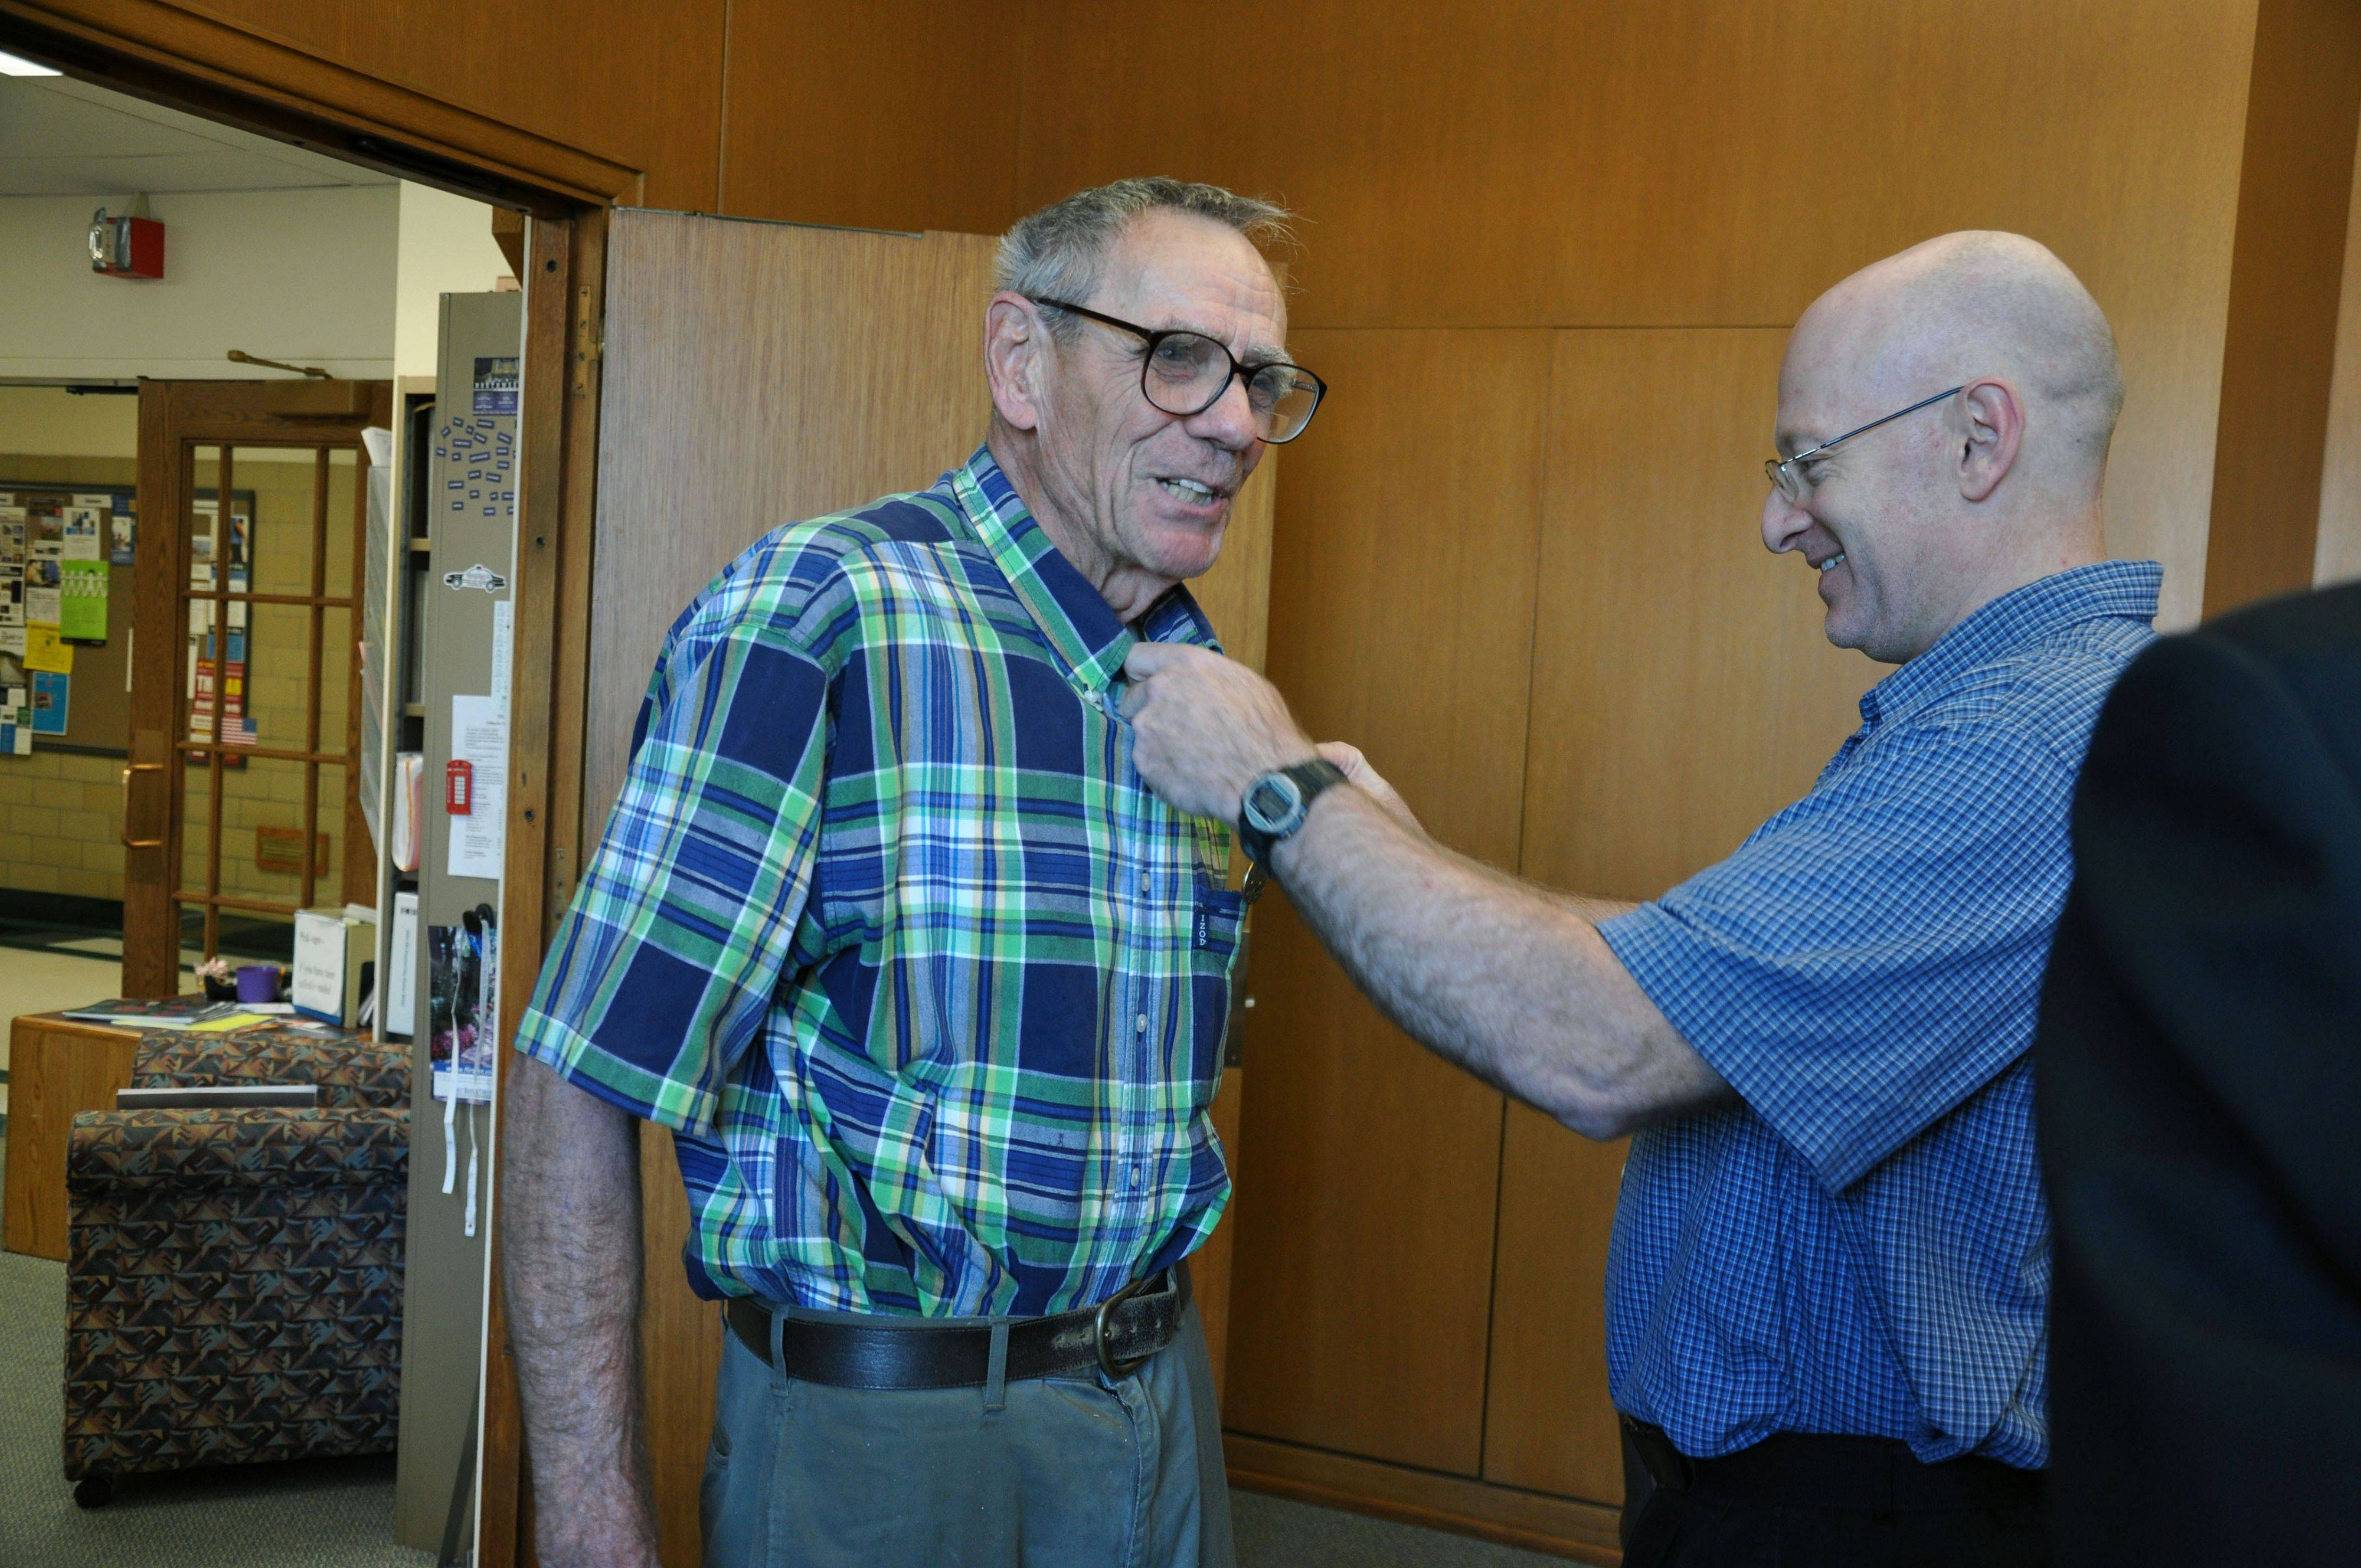 Co-worker Mark Seniw pins a medal to the chest of Arlington Heights resident Jim Hahn during a ceremony at Northwestern University on Tuesday. Hahn, a former Navy Seabee, never received the medal, despite earning it during World War II.